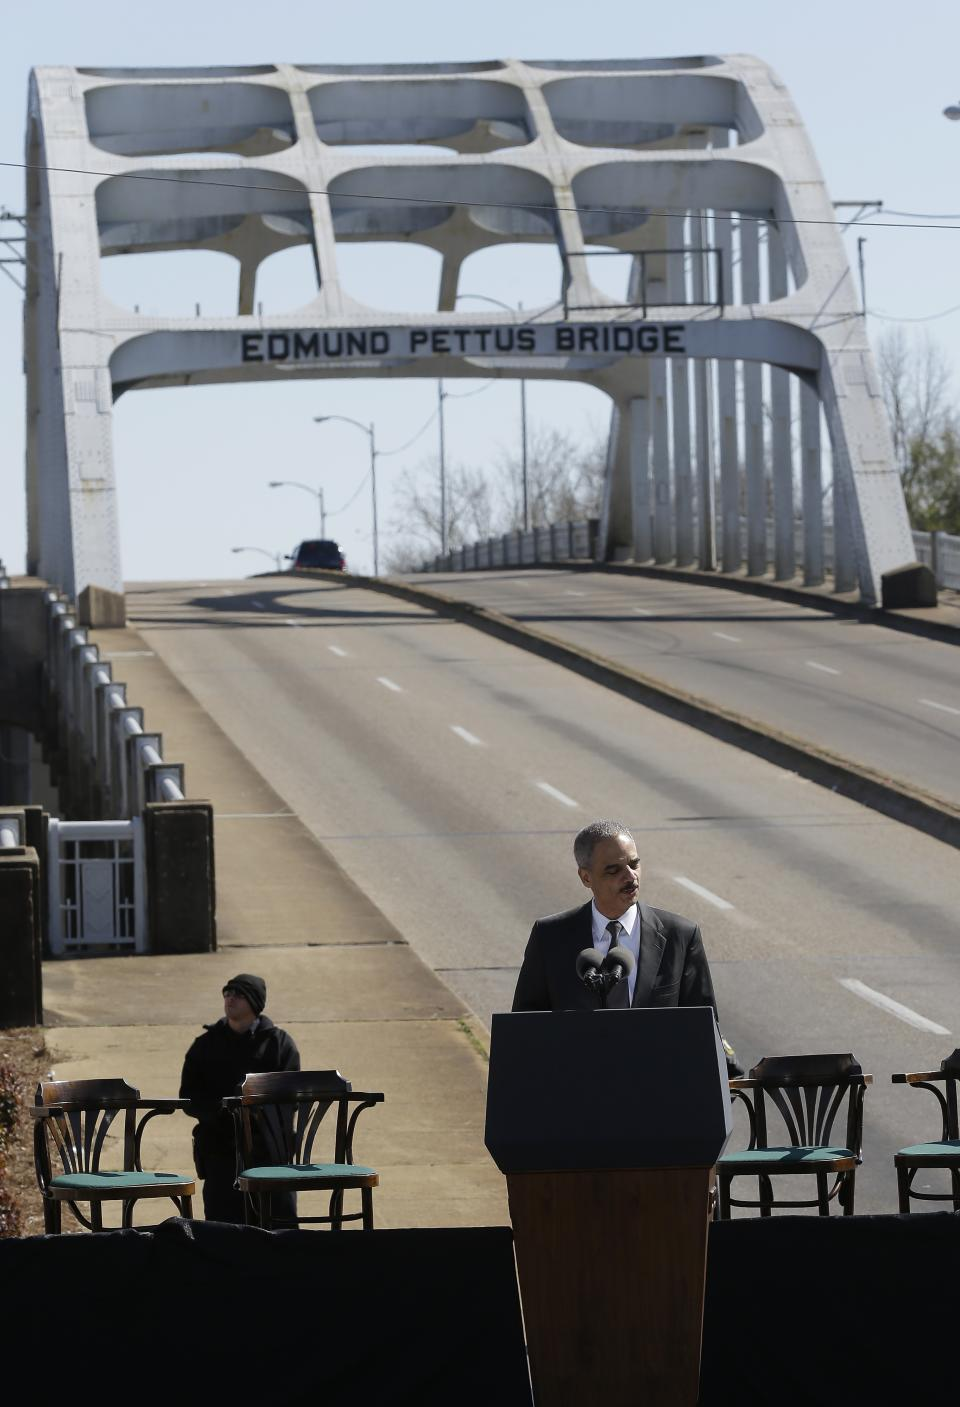 U.S. Attorney General Eric Holder addresses those who gathered for the Bridge Crossing Jubilee in Selma, Ala., Sunday, March 3, 2013. They were commemorating the 48th anniversary of Bloody Sunday, when police officers beat marchers when they crossed the bridge on a march from Selma to Montgomery. (AP Photo/Dave Martin)